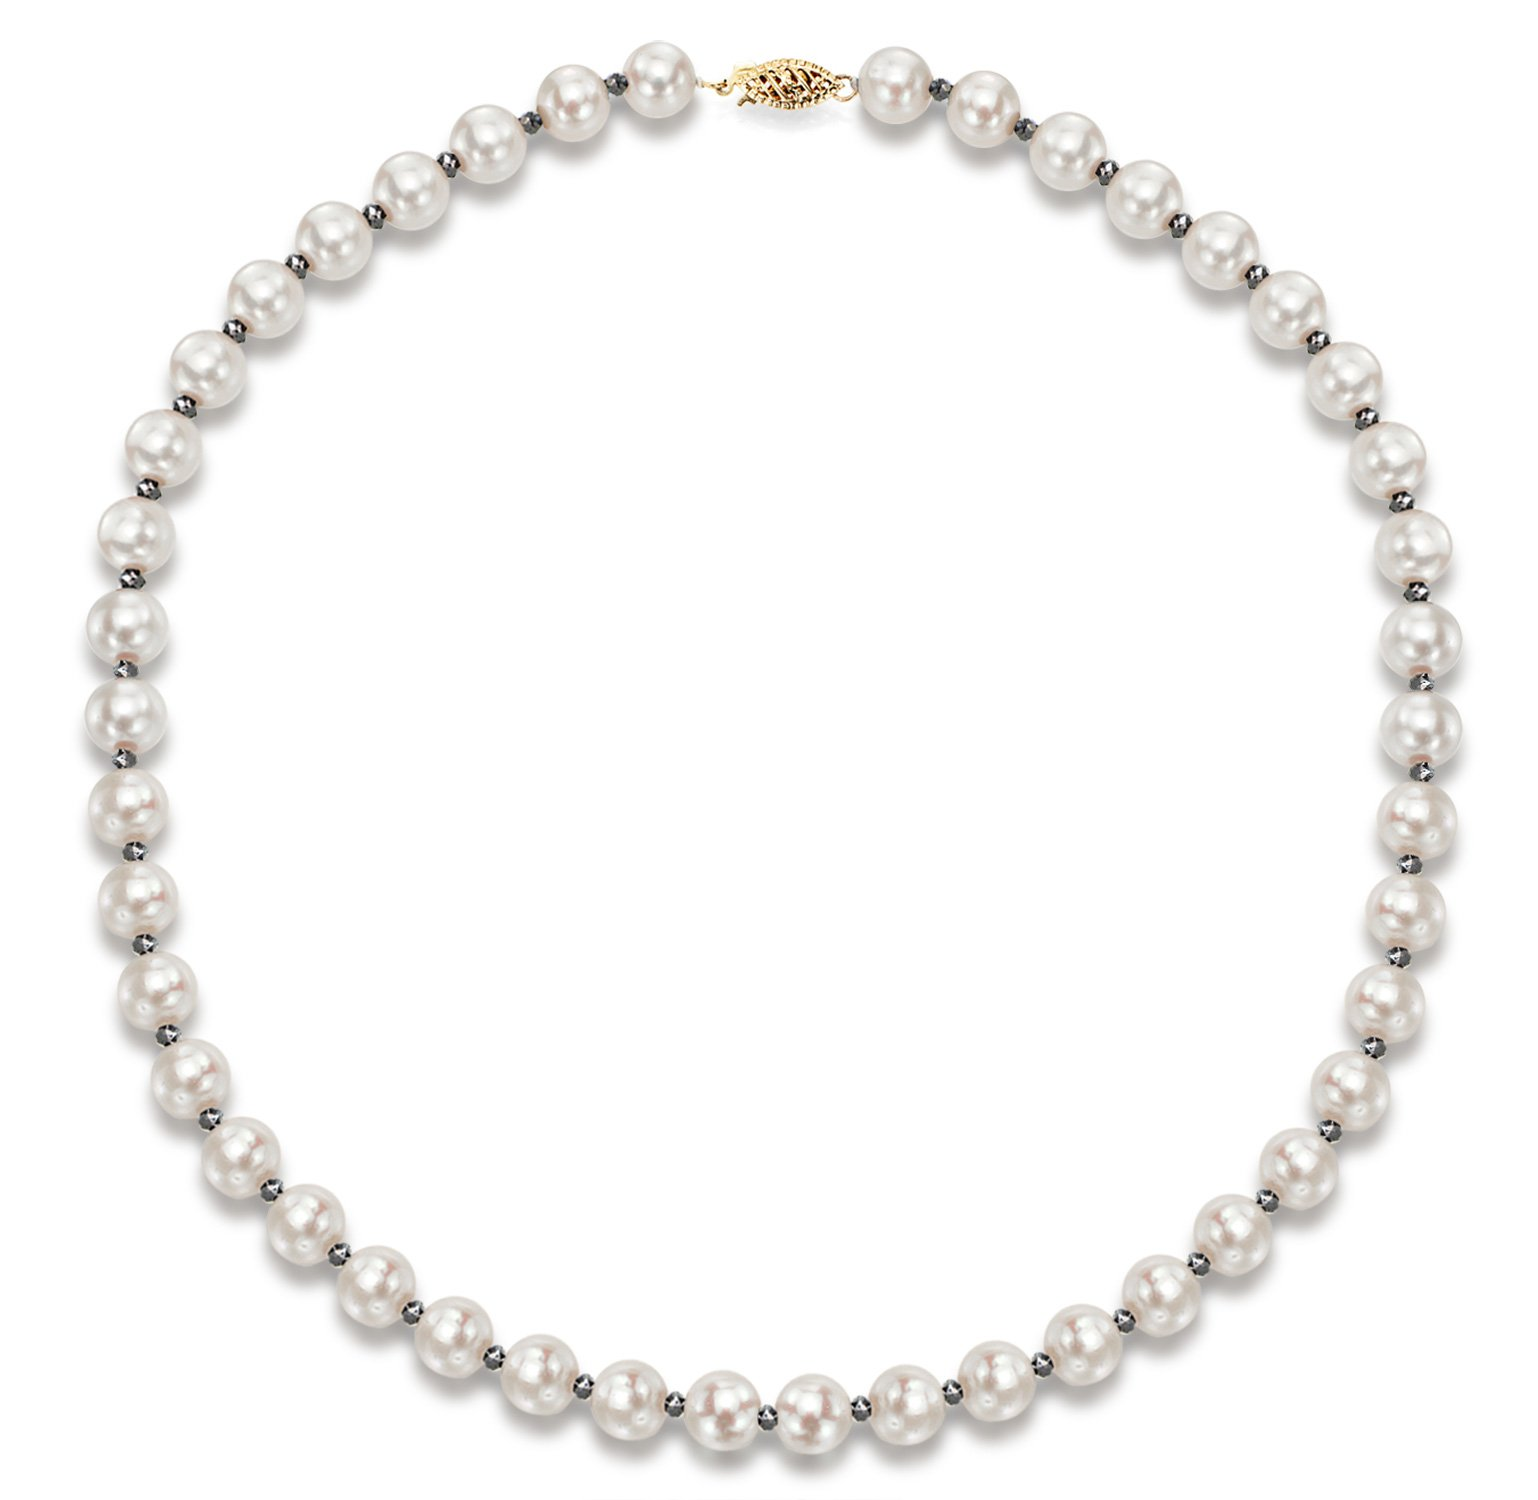 14k Yellow Gold 8-8.5mm White Freshwater Cultured Pearl and 2-3mm Black Diamond Necklace, 18''